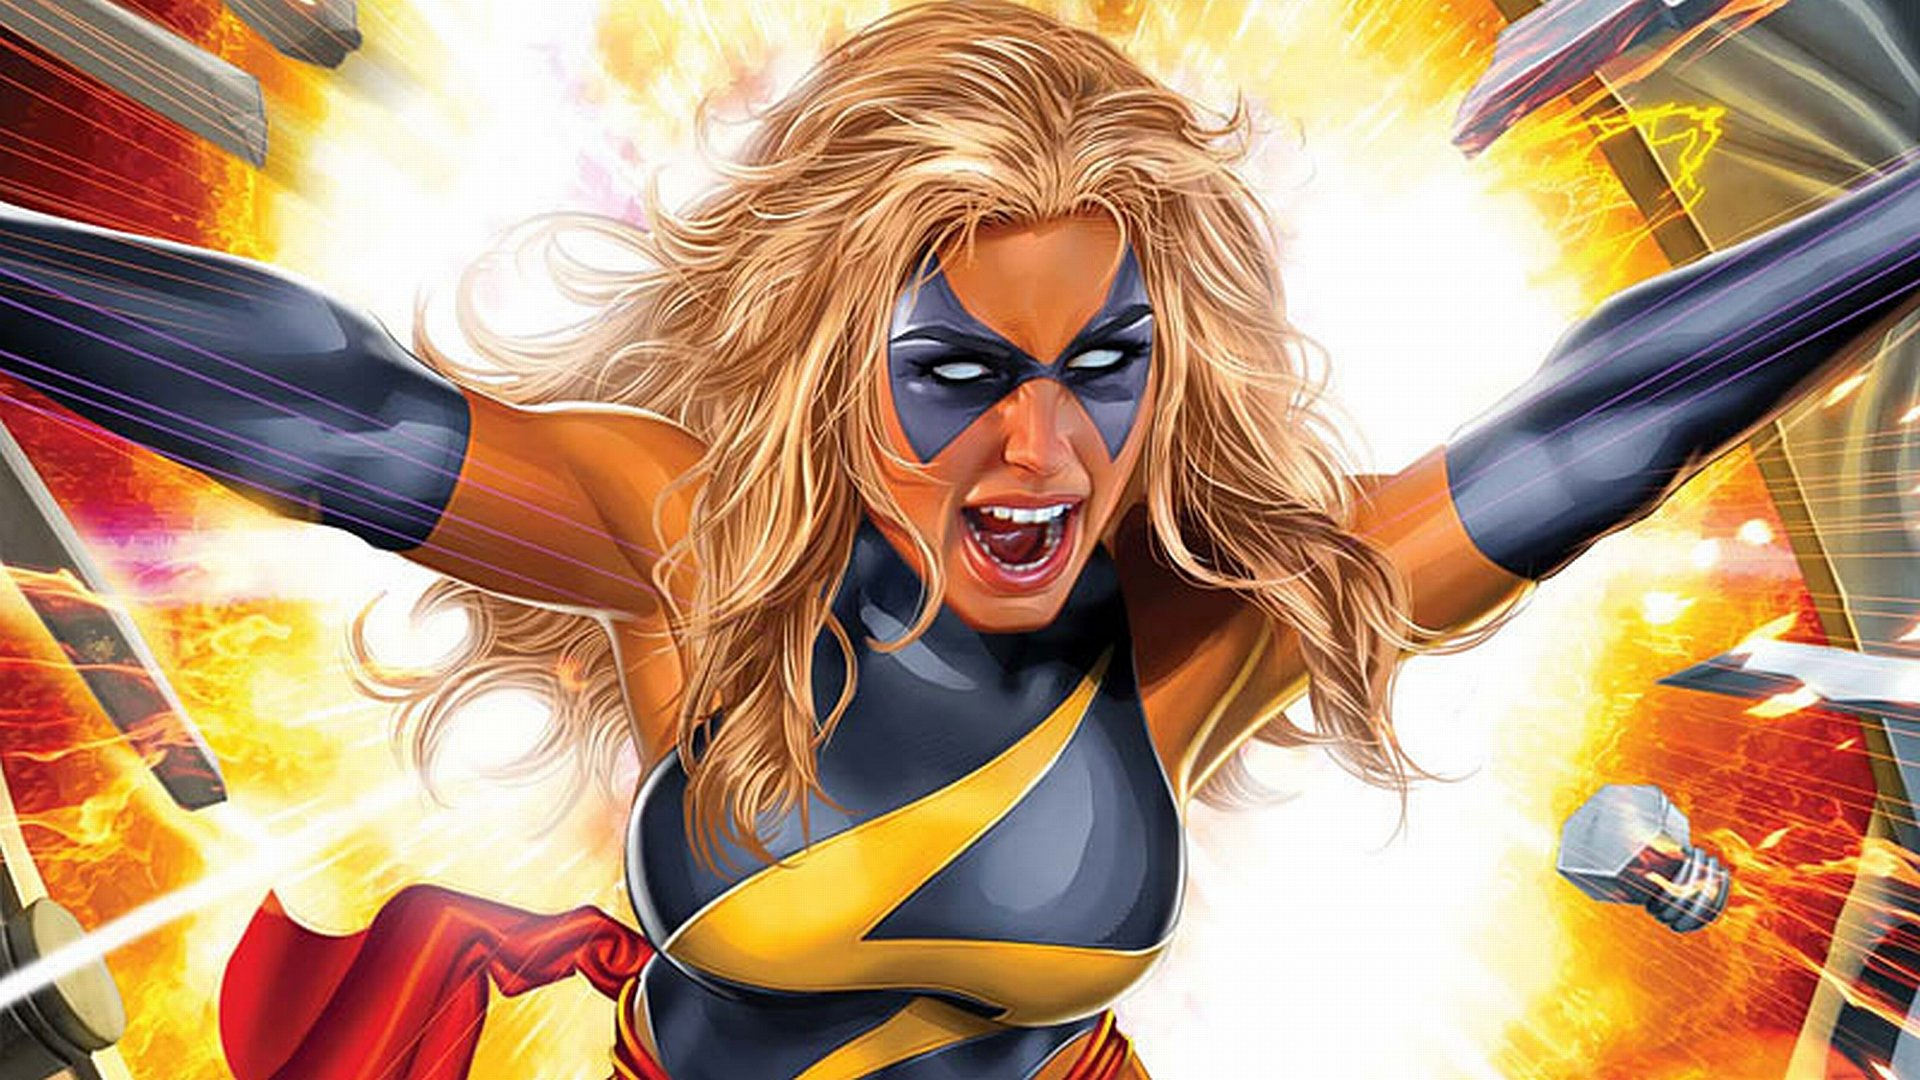 Download 1080p Ms Marvel computer background ID:40015 for free